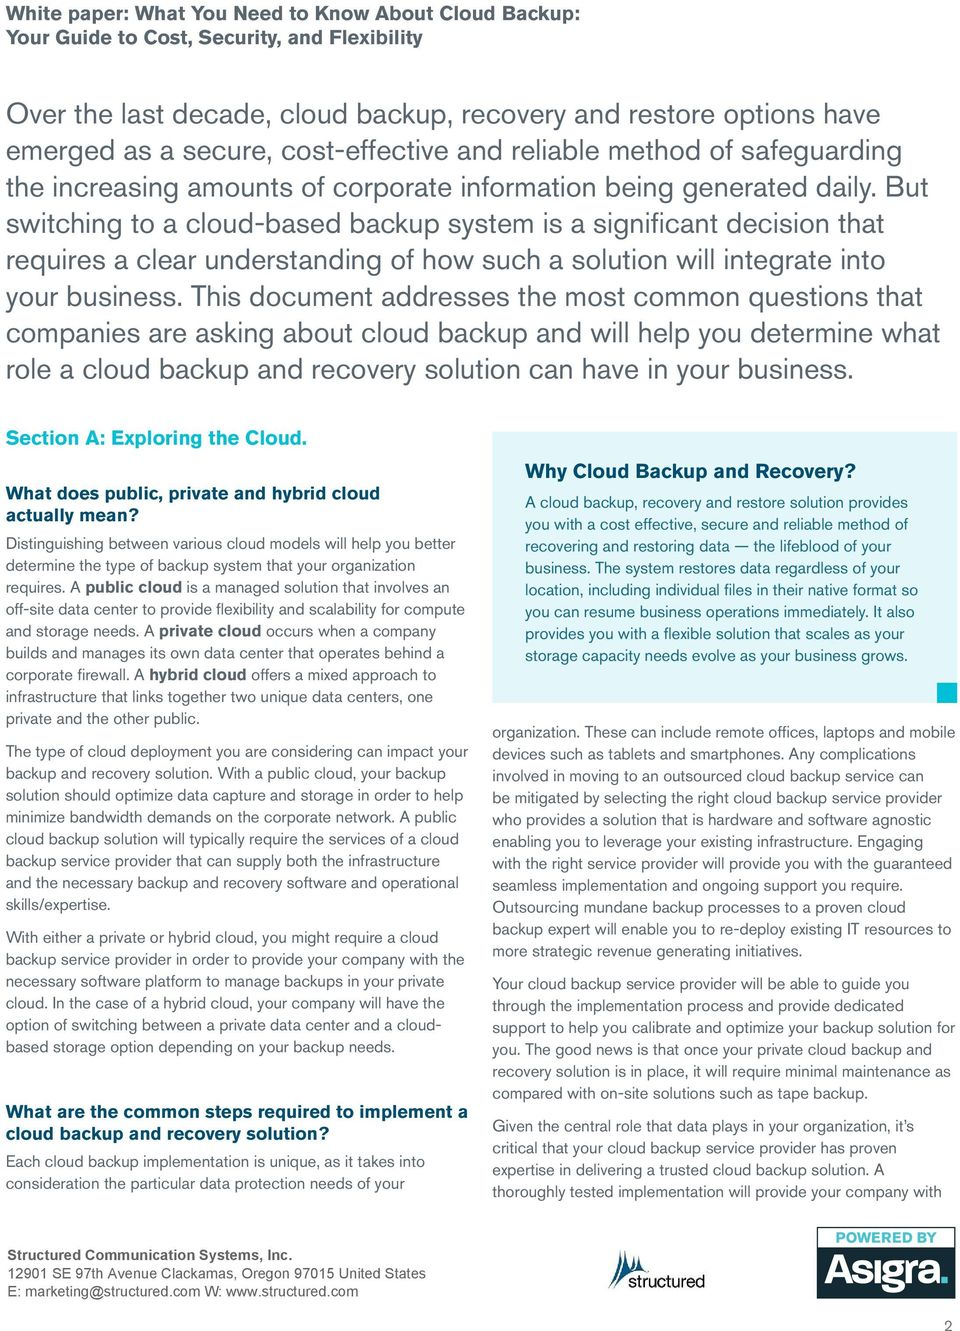 This document addresses the most common questions that companies are asking about cloud backup and will help you determine what role a cloud backup and recovery solution can have in your business.